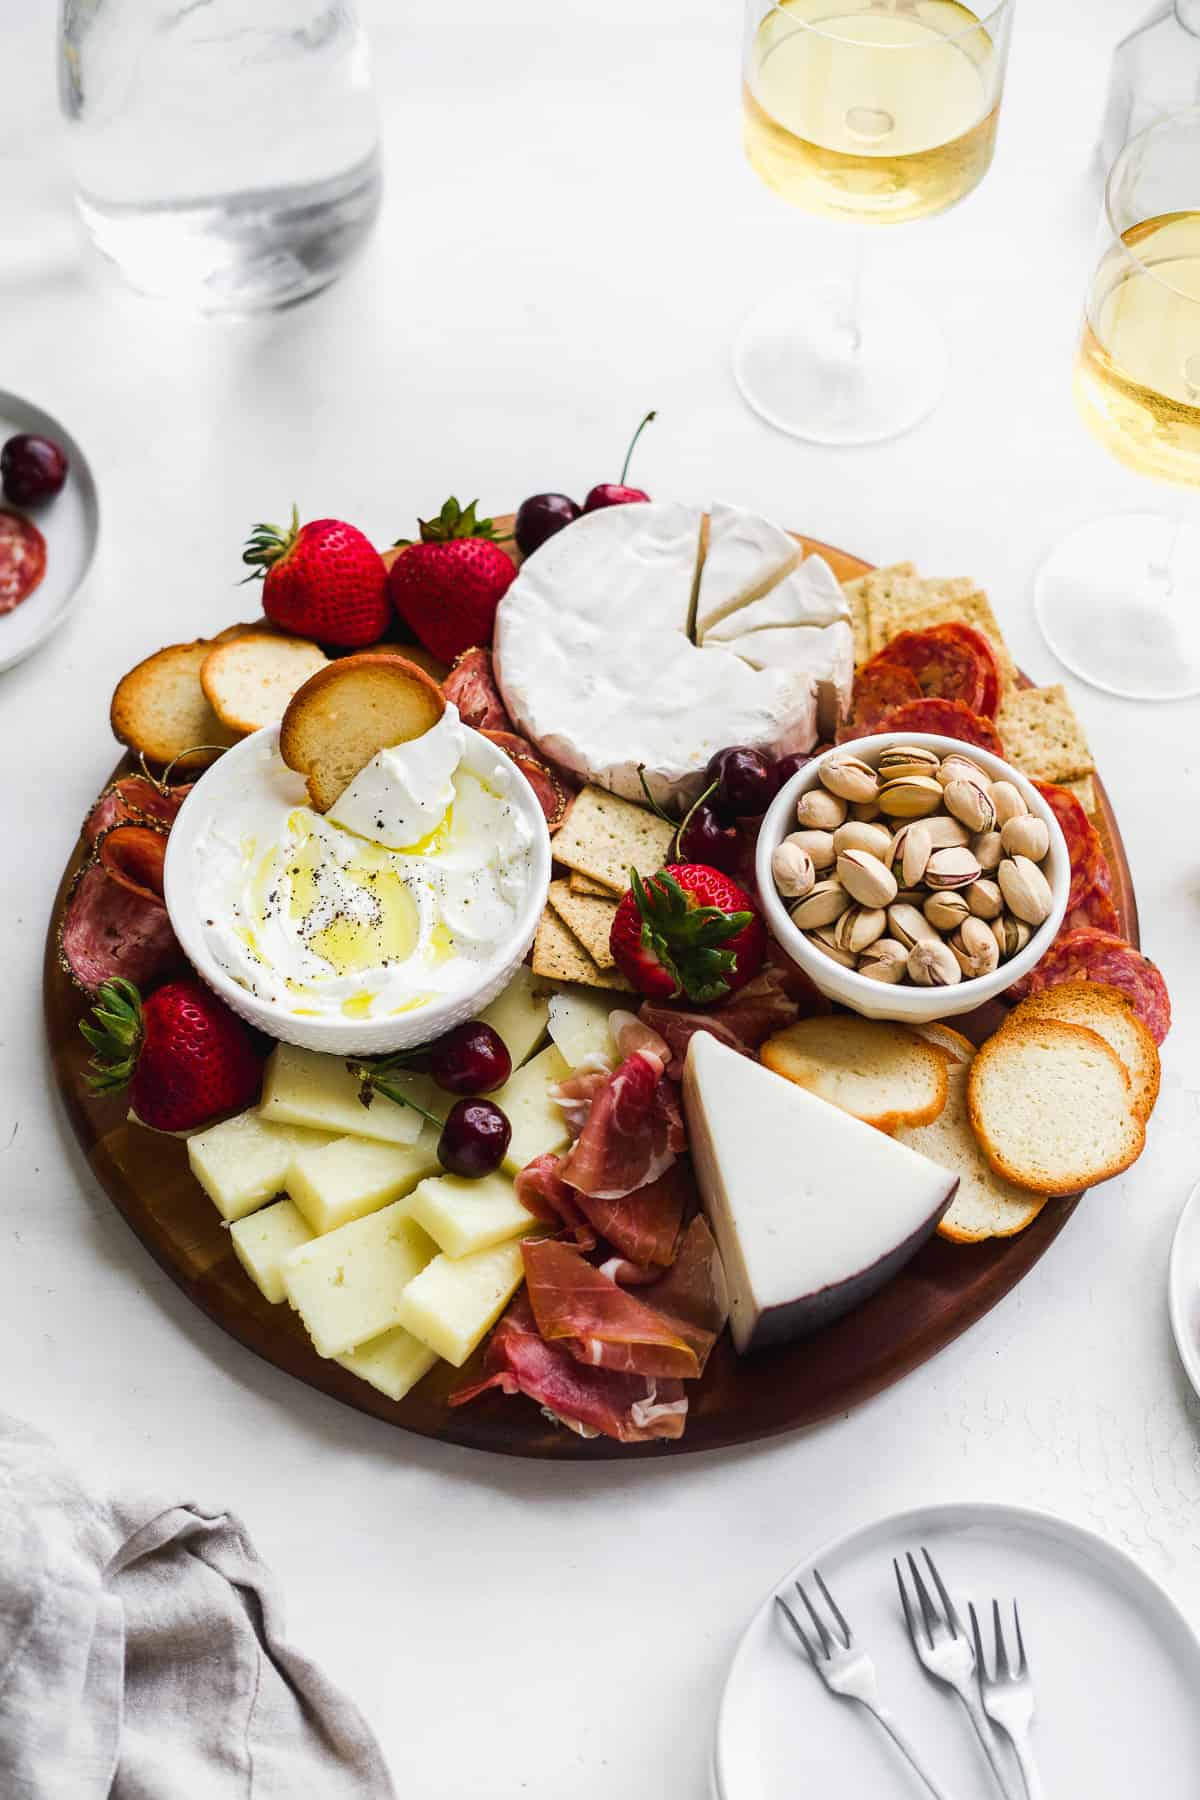 Wooden board filled with meats and cheeses and wine on the side.